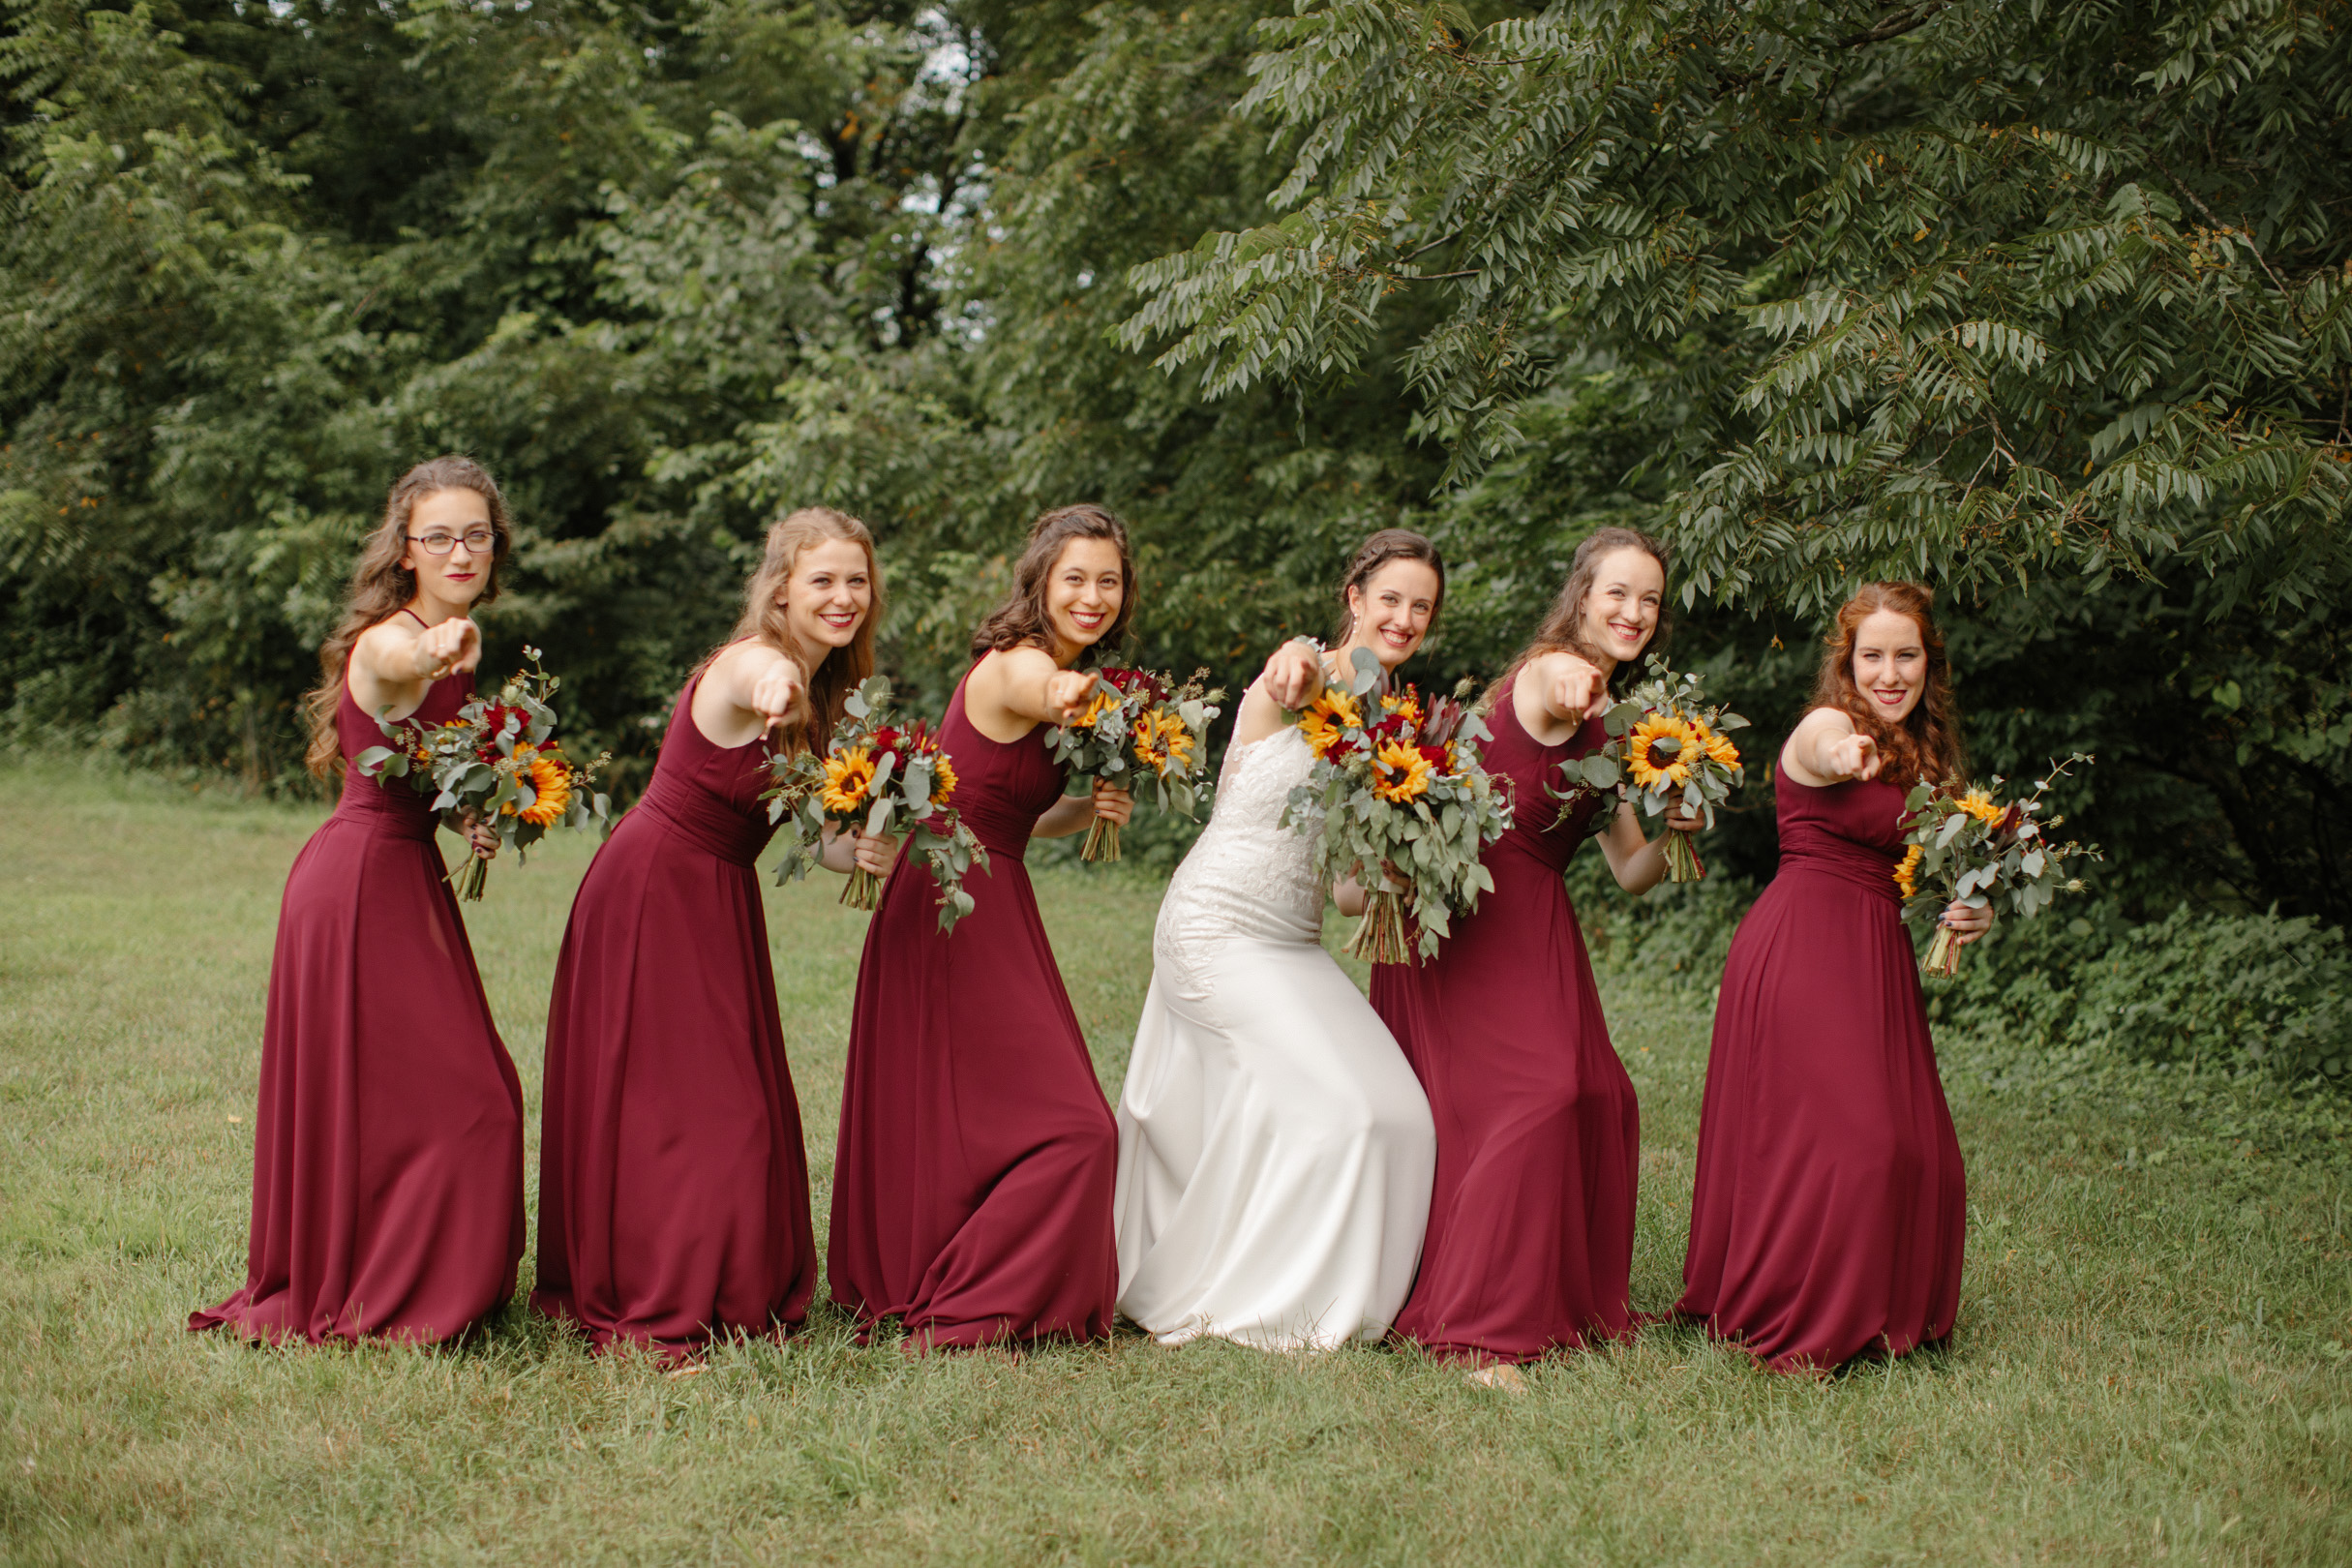 funny pose ideas for bridal party